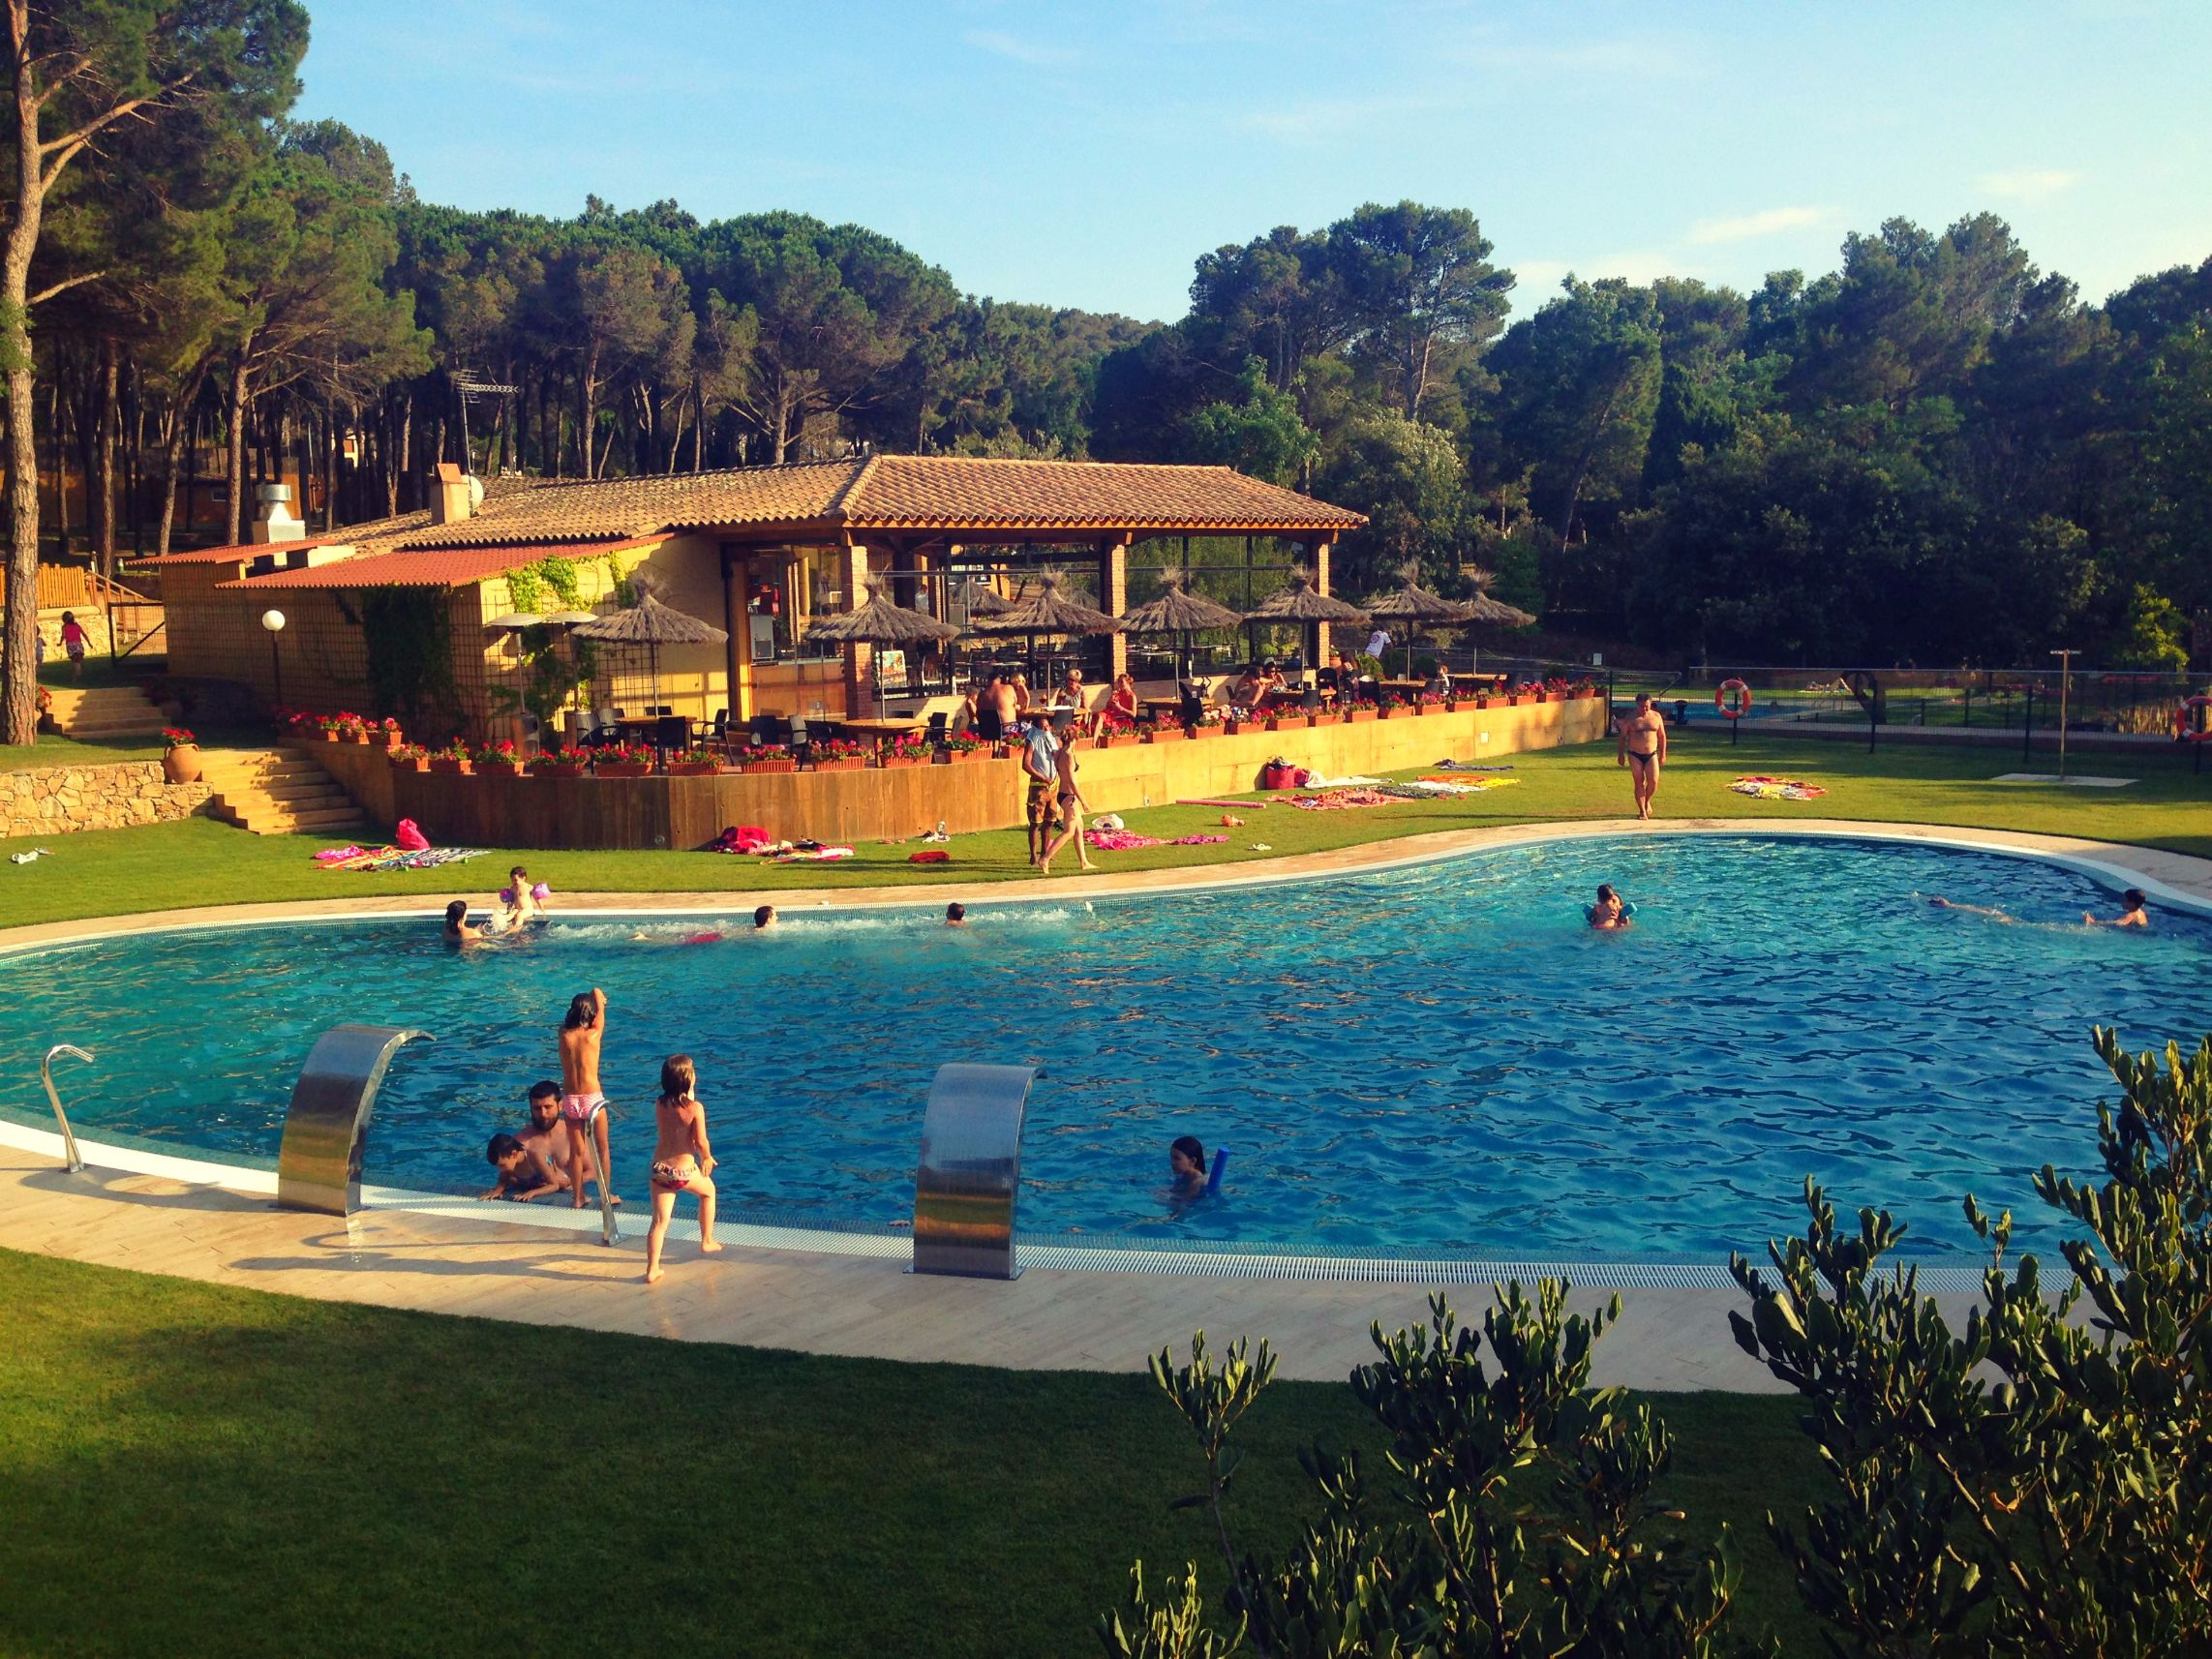 Camping Begur ~ One of the best campsites on the Costa Brava.